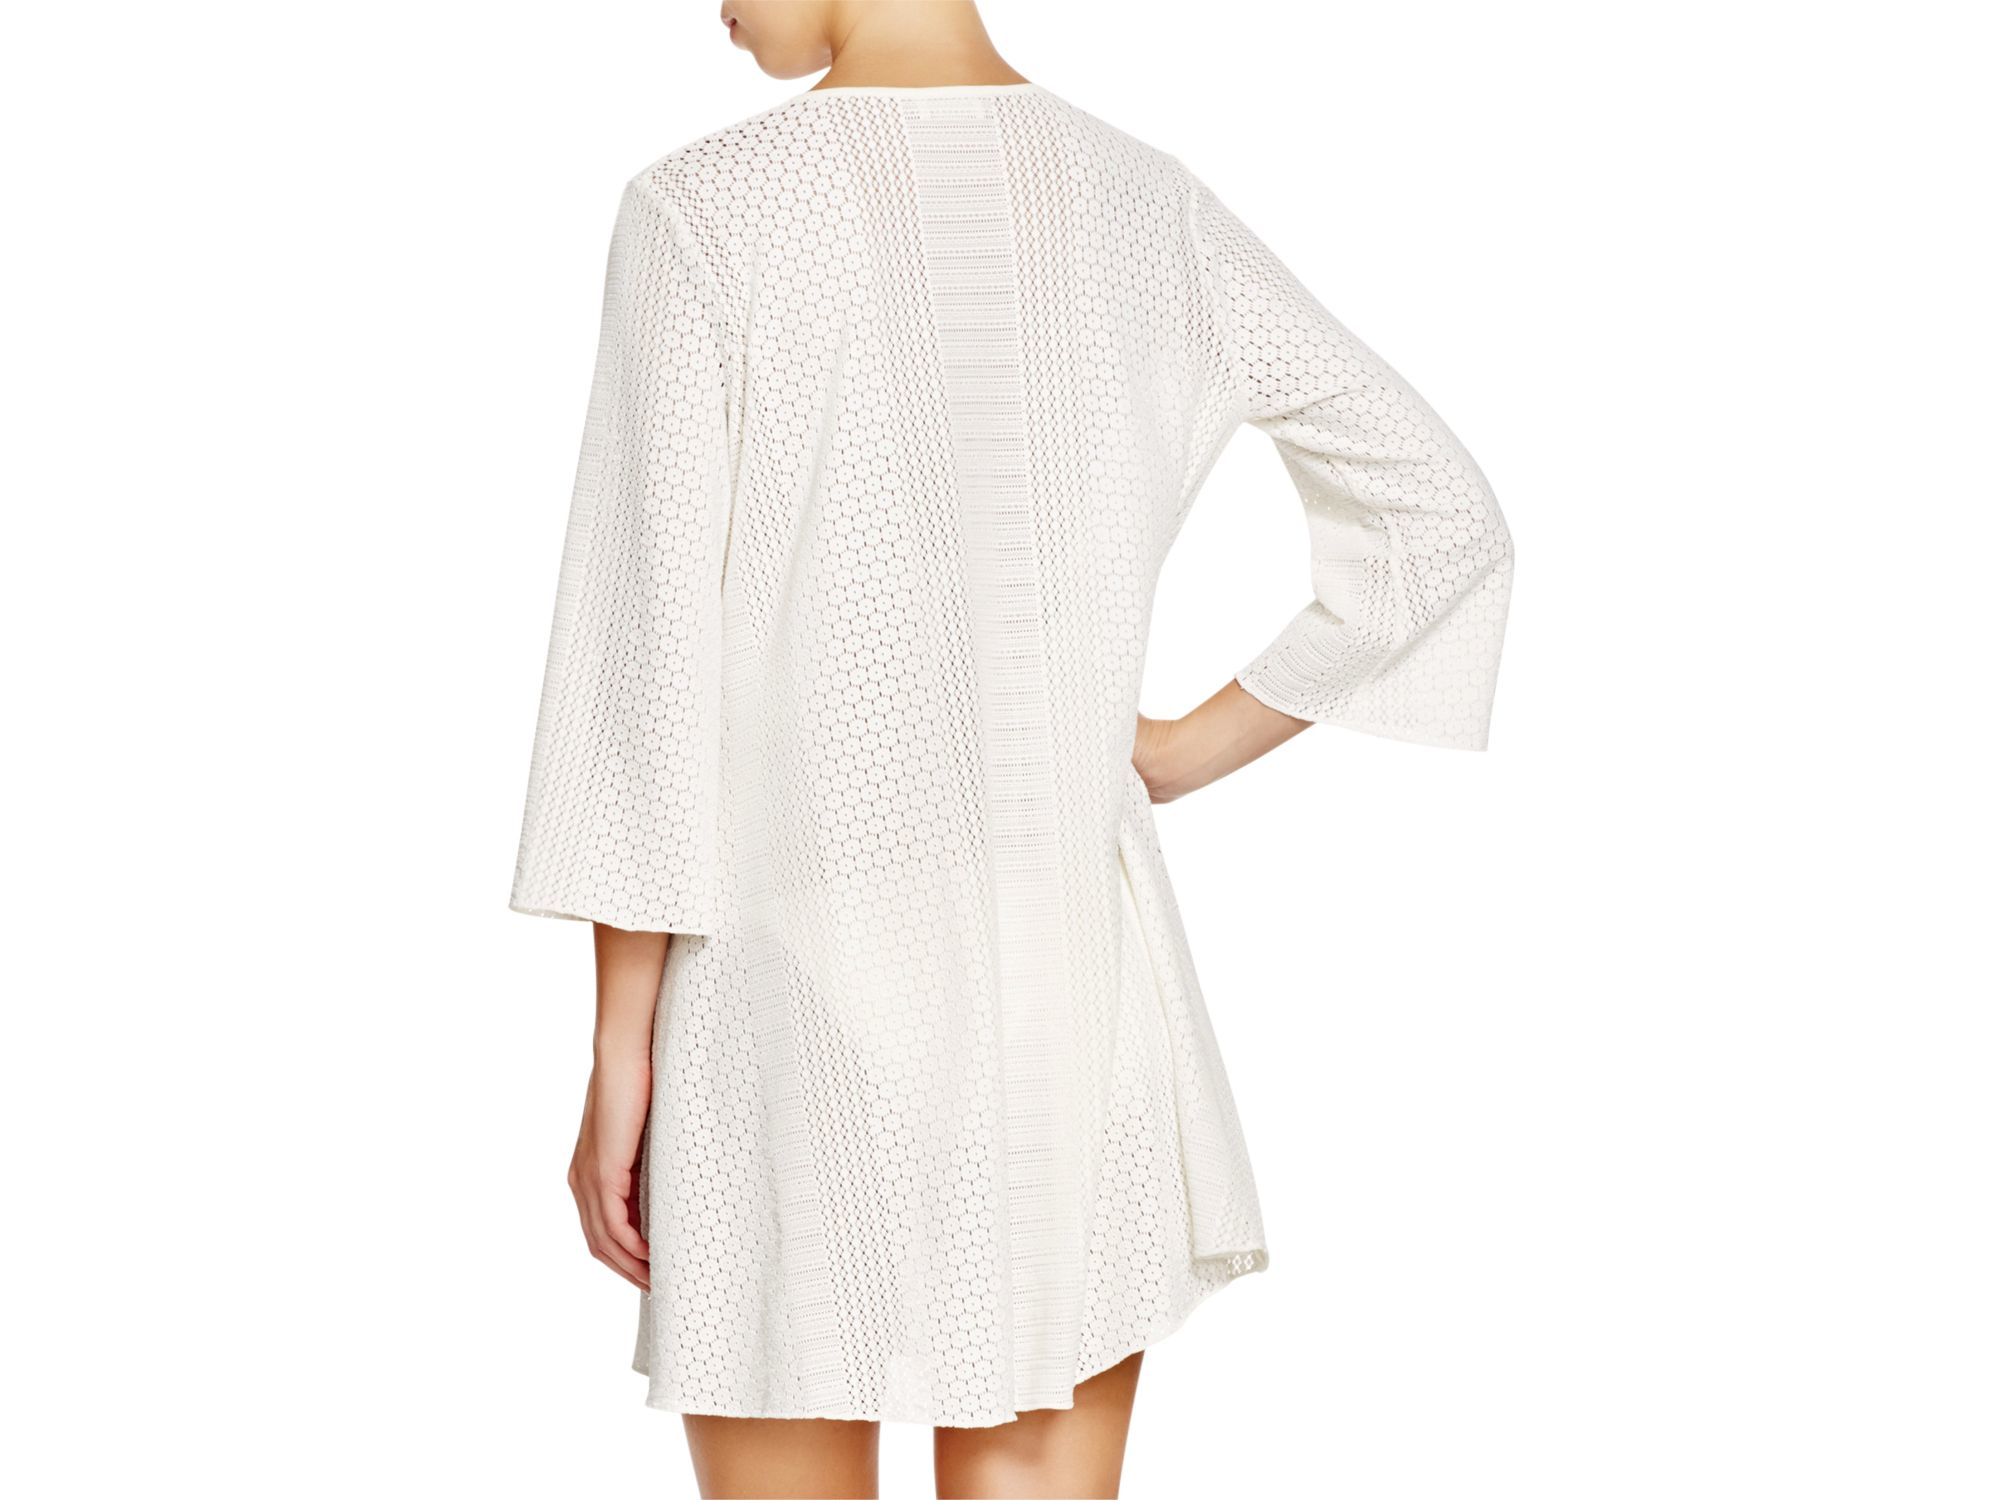 f0500544e51ee8 Shoshanna Eyelet Tunic Swim Cover Up in White - Lyst